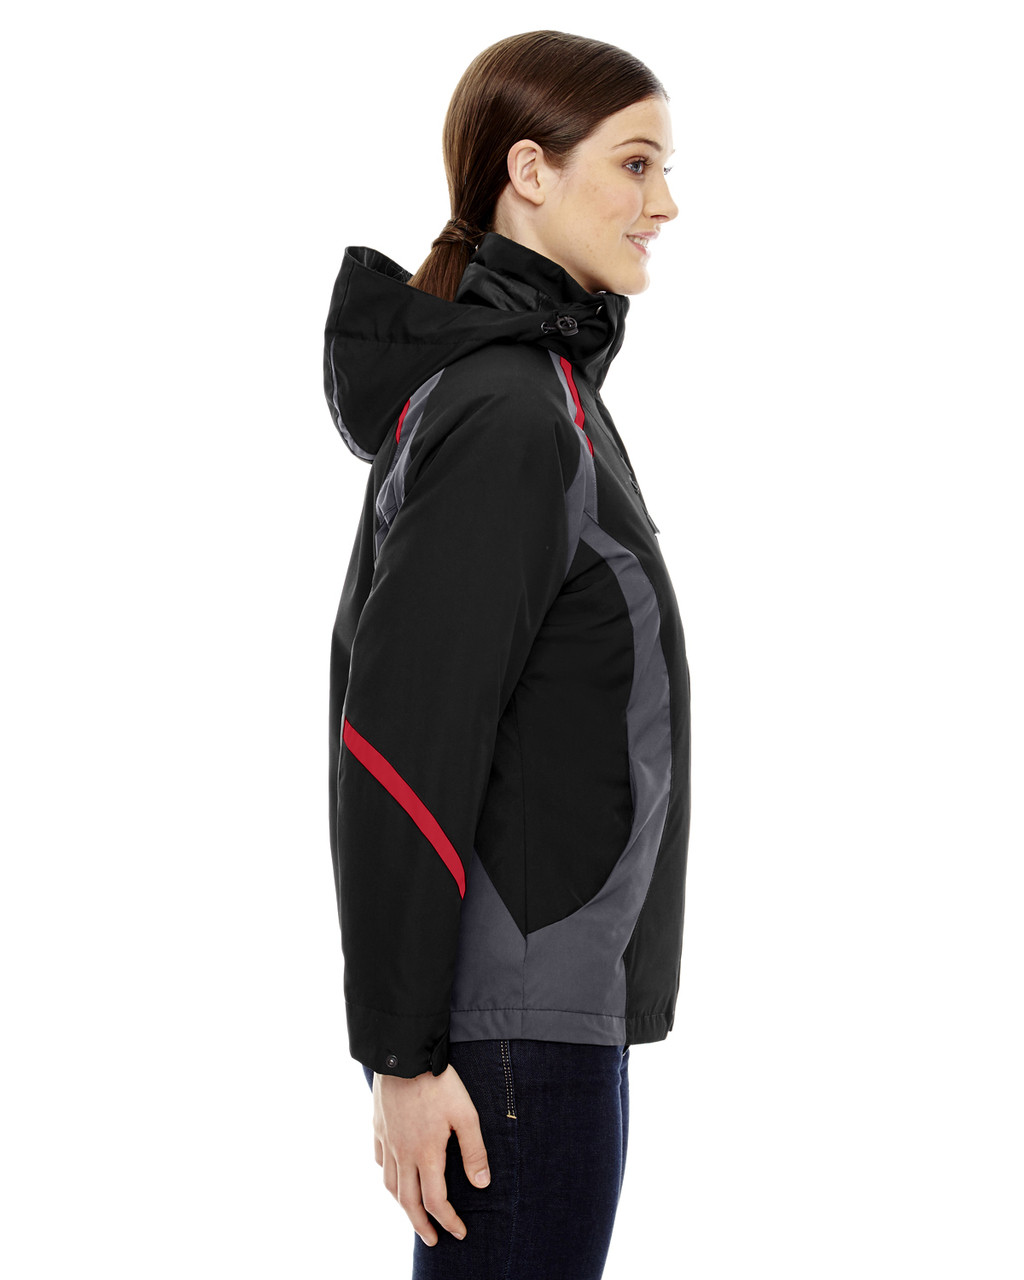 Black/Classic Red, Side - 78195 Ash City - North End Ladies' Height 3-in-1 Jacket with Insulated Liner | Blankclothing.ca